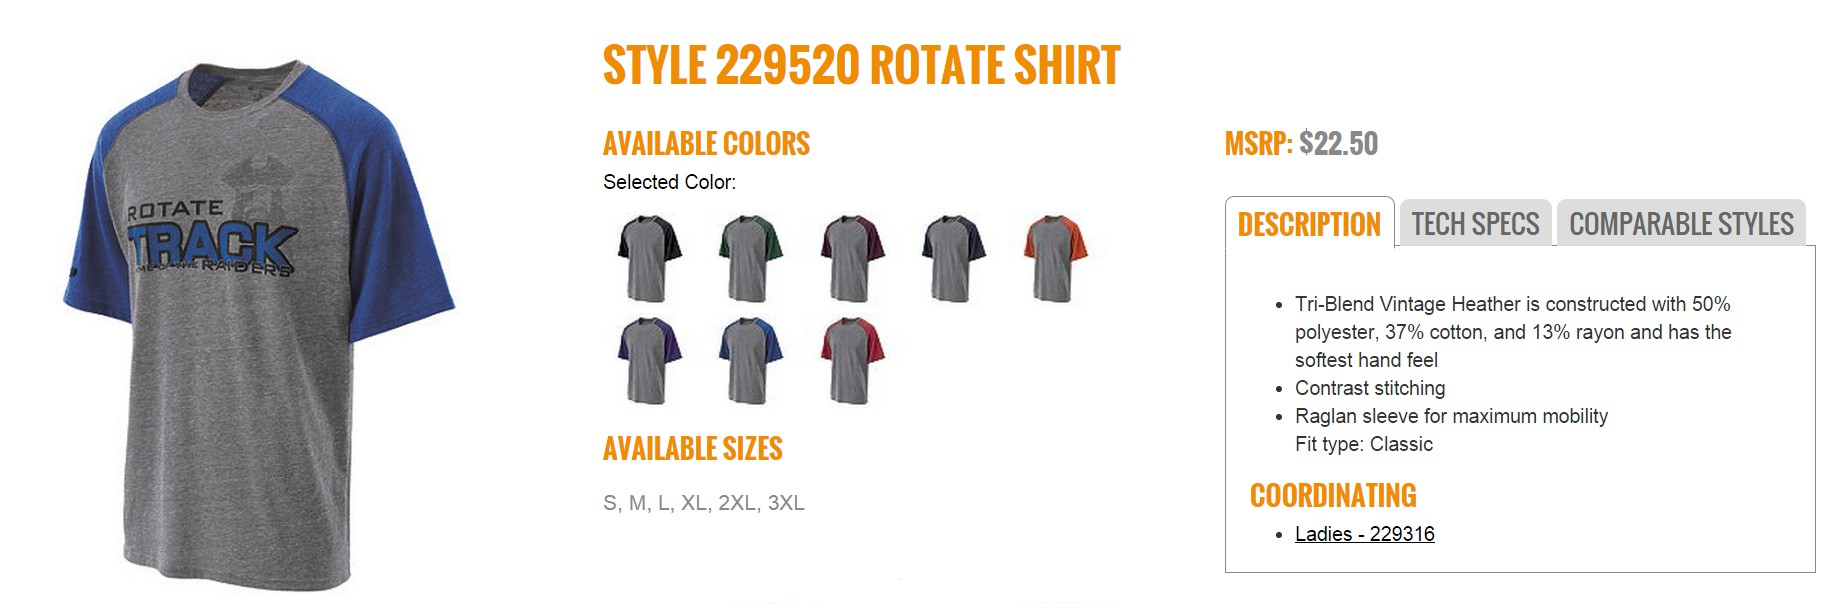 Group Fundraising Store Apparel Fundraising Holloway Rotate Shirt 229520